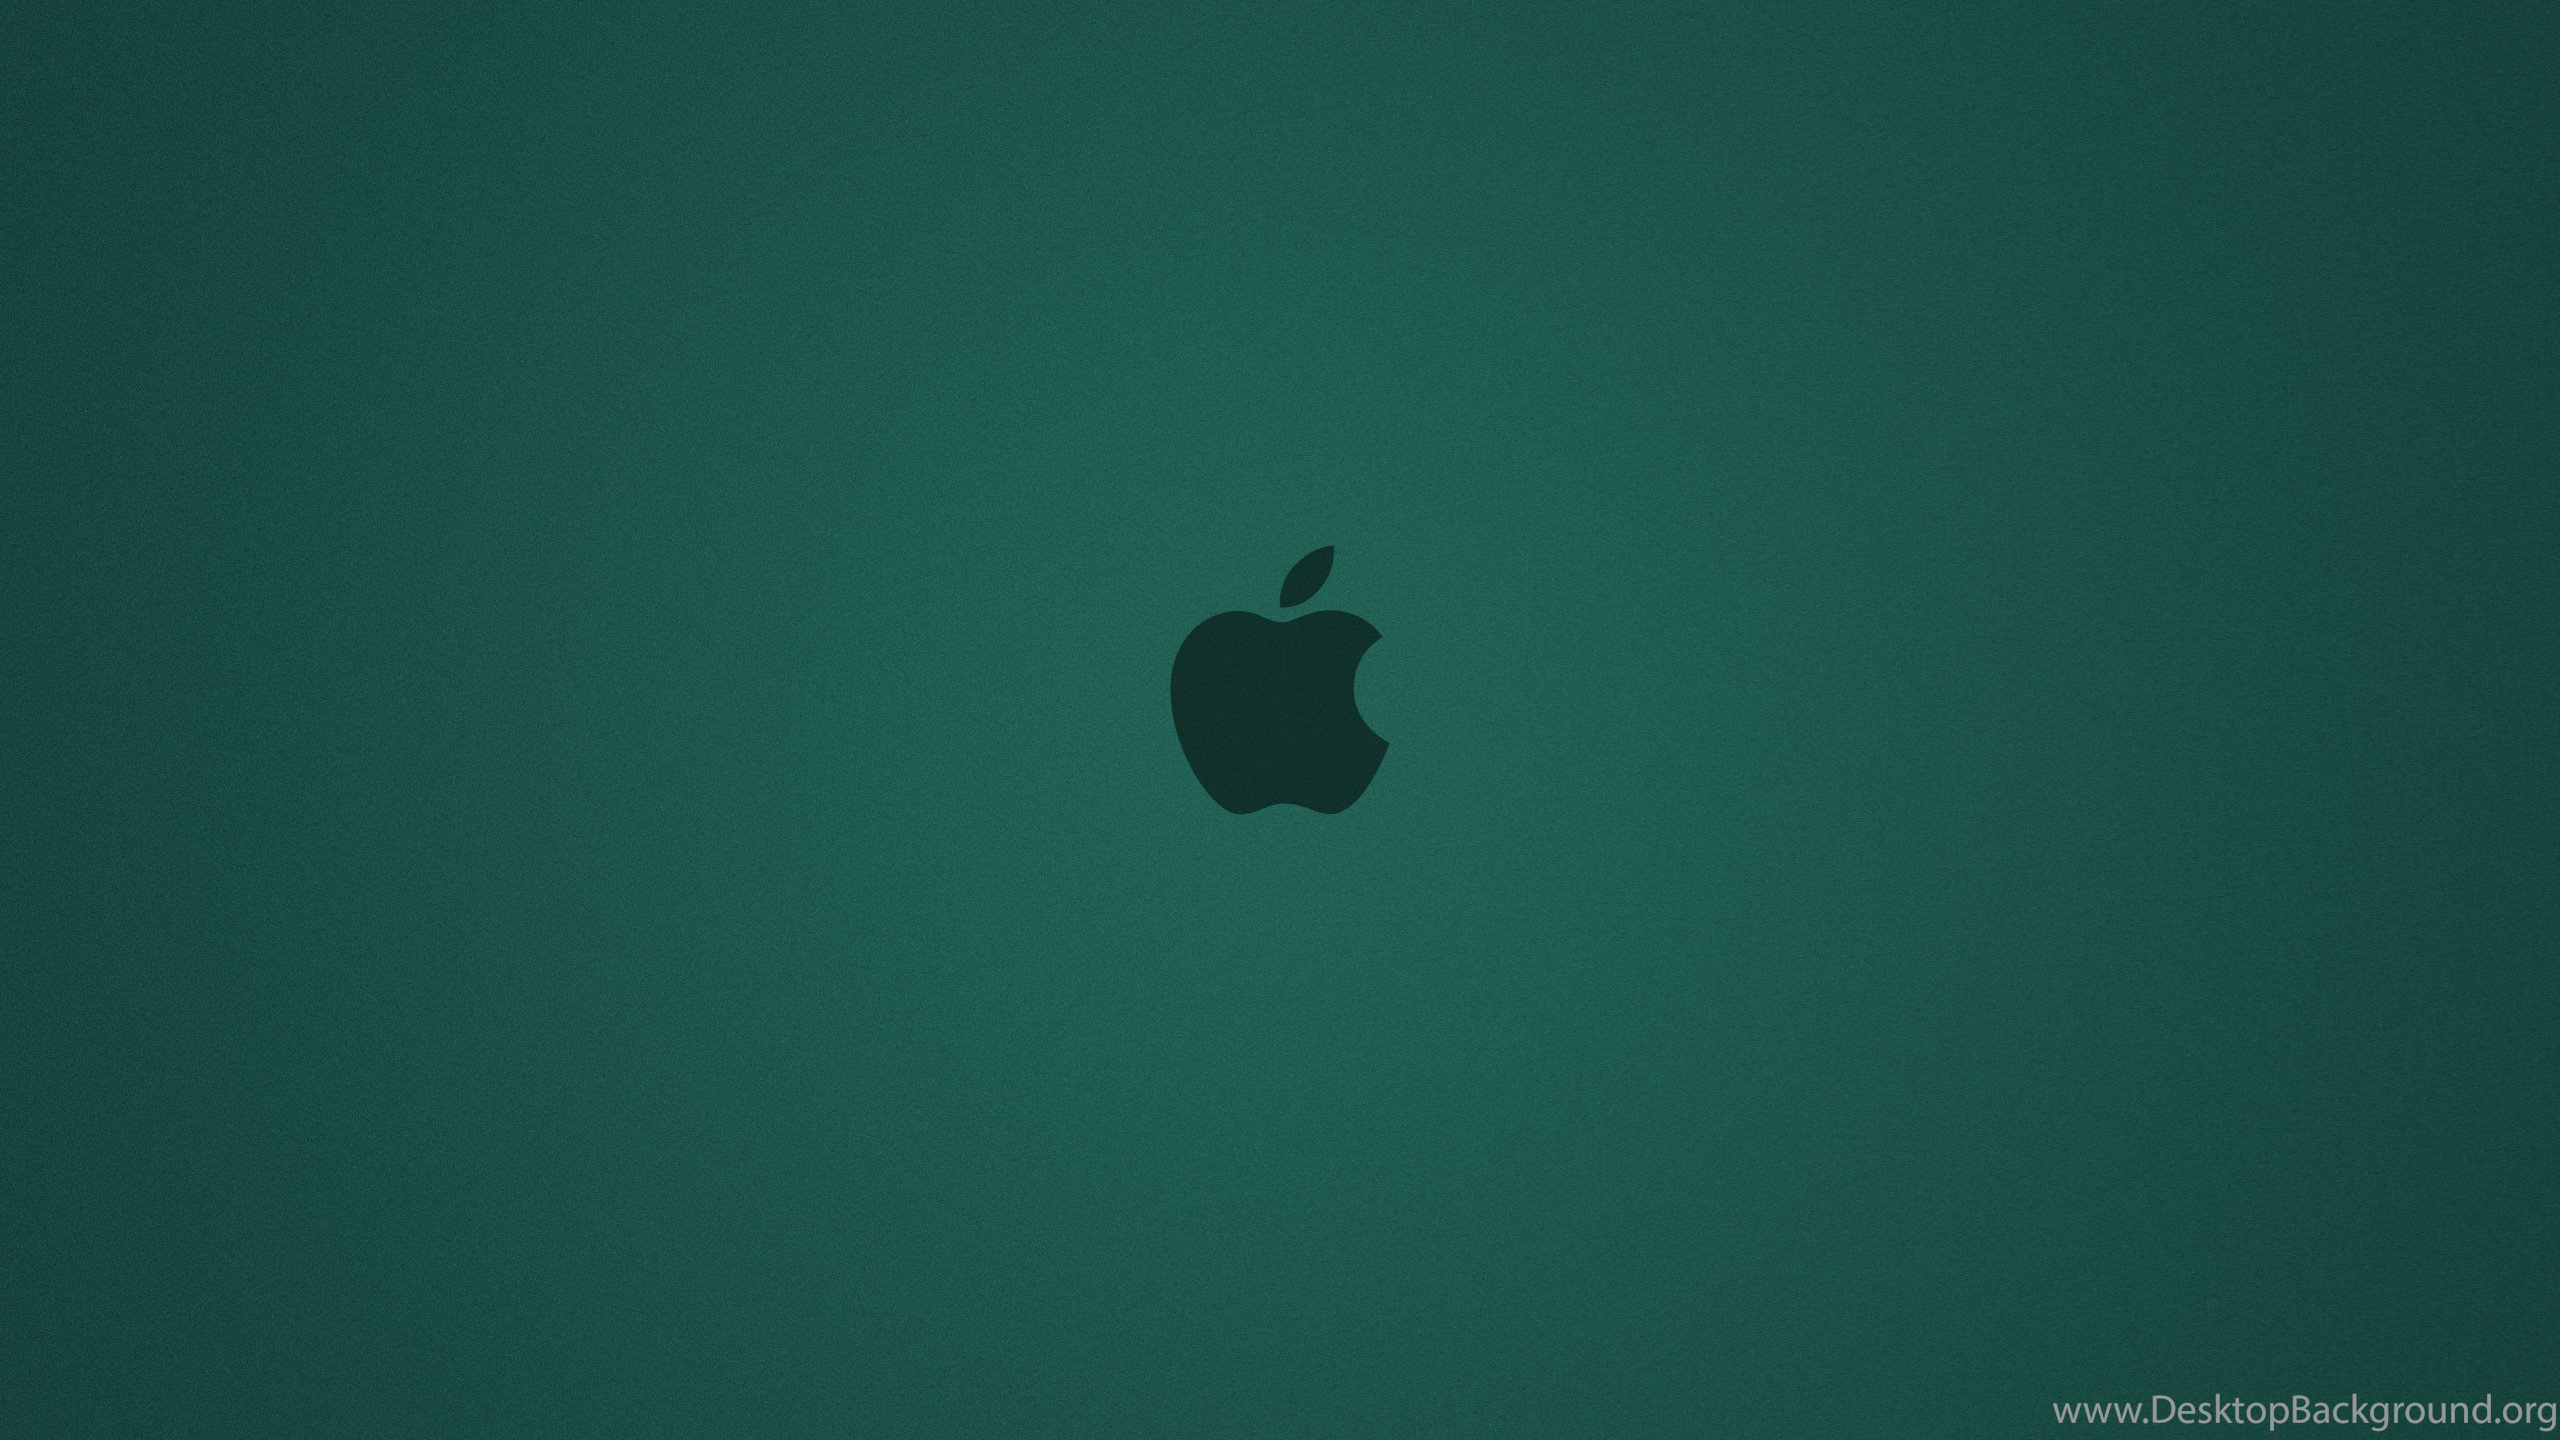 2560x1440 Cyan Apple Backgrounds Desktop PC And Mac